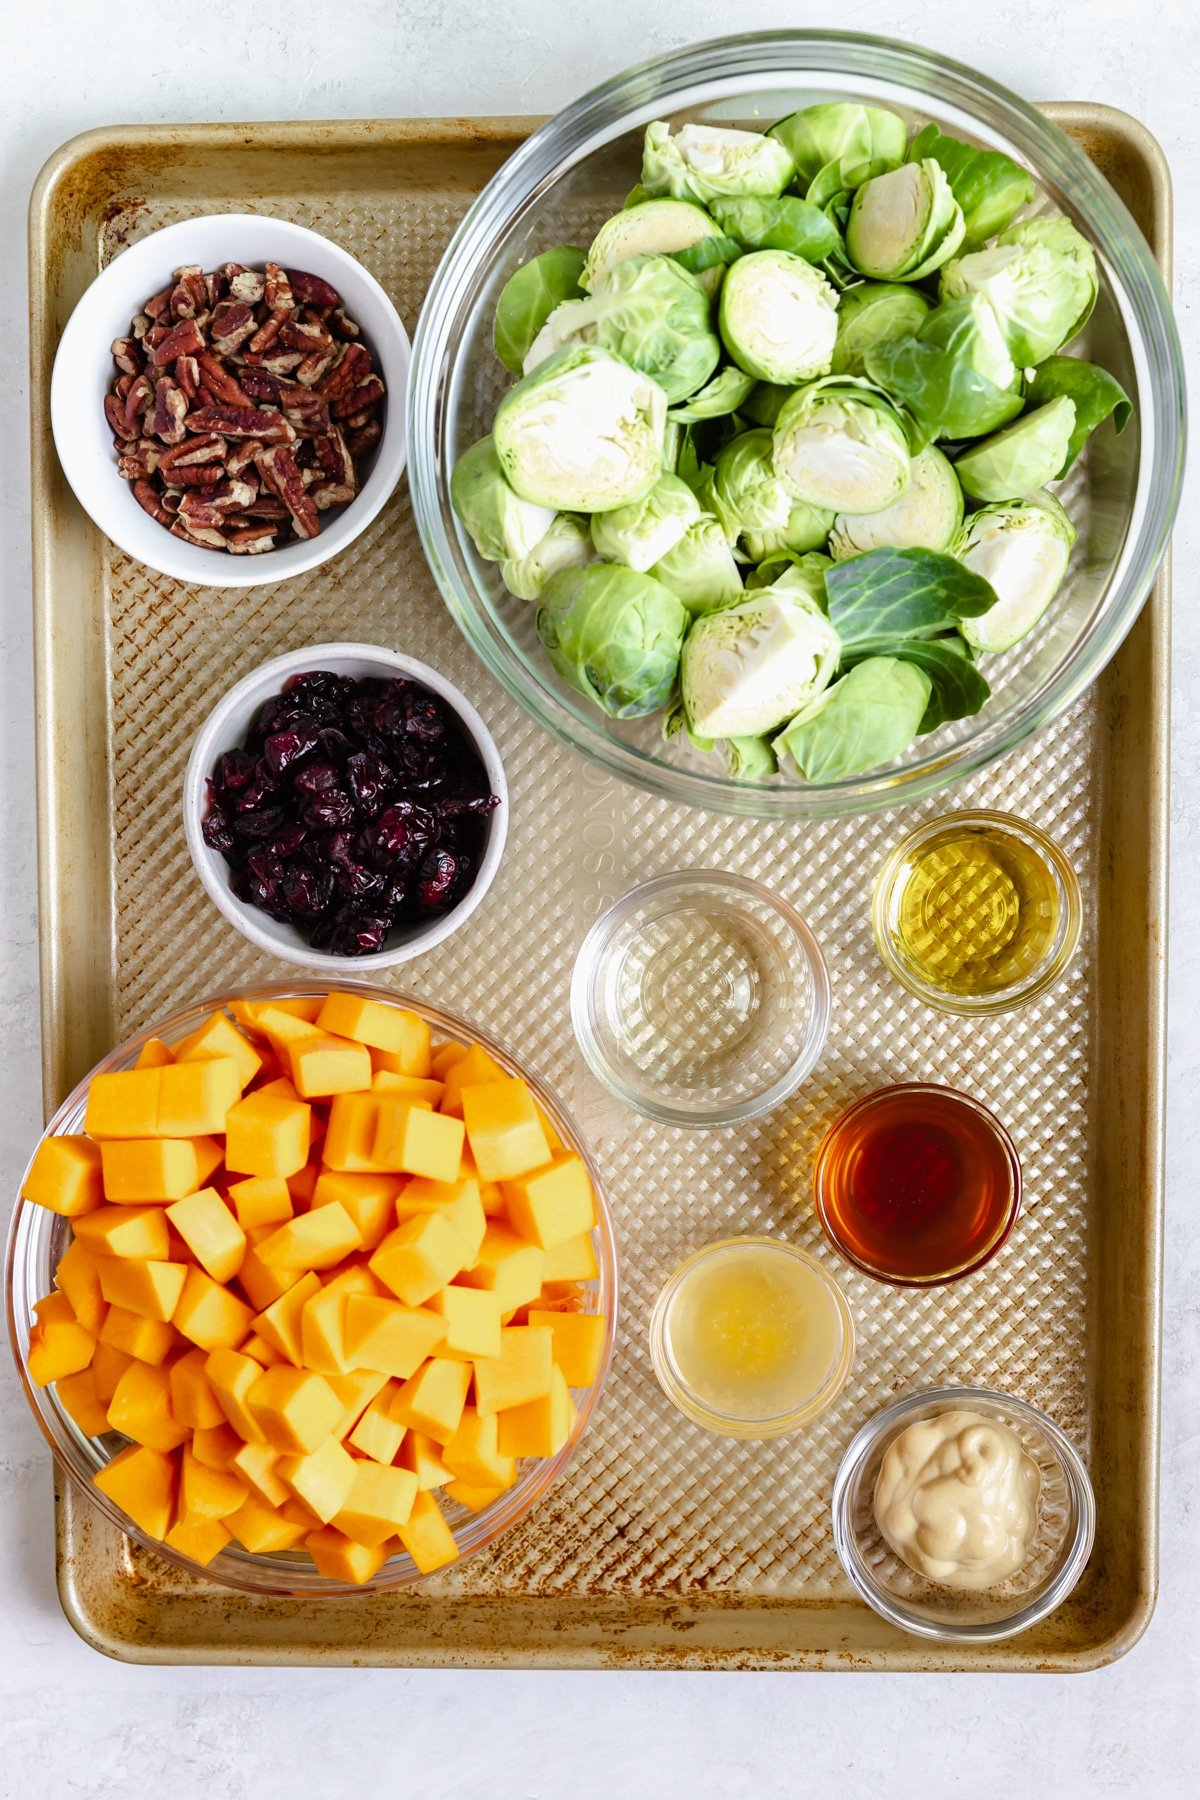 ingredients needed to make roasted brussels sprouts and butternut squash in small dishes on a gold sheet pan